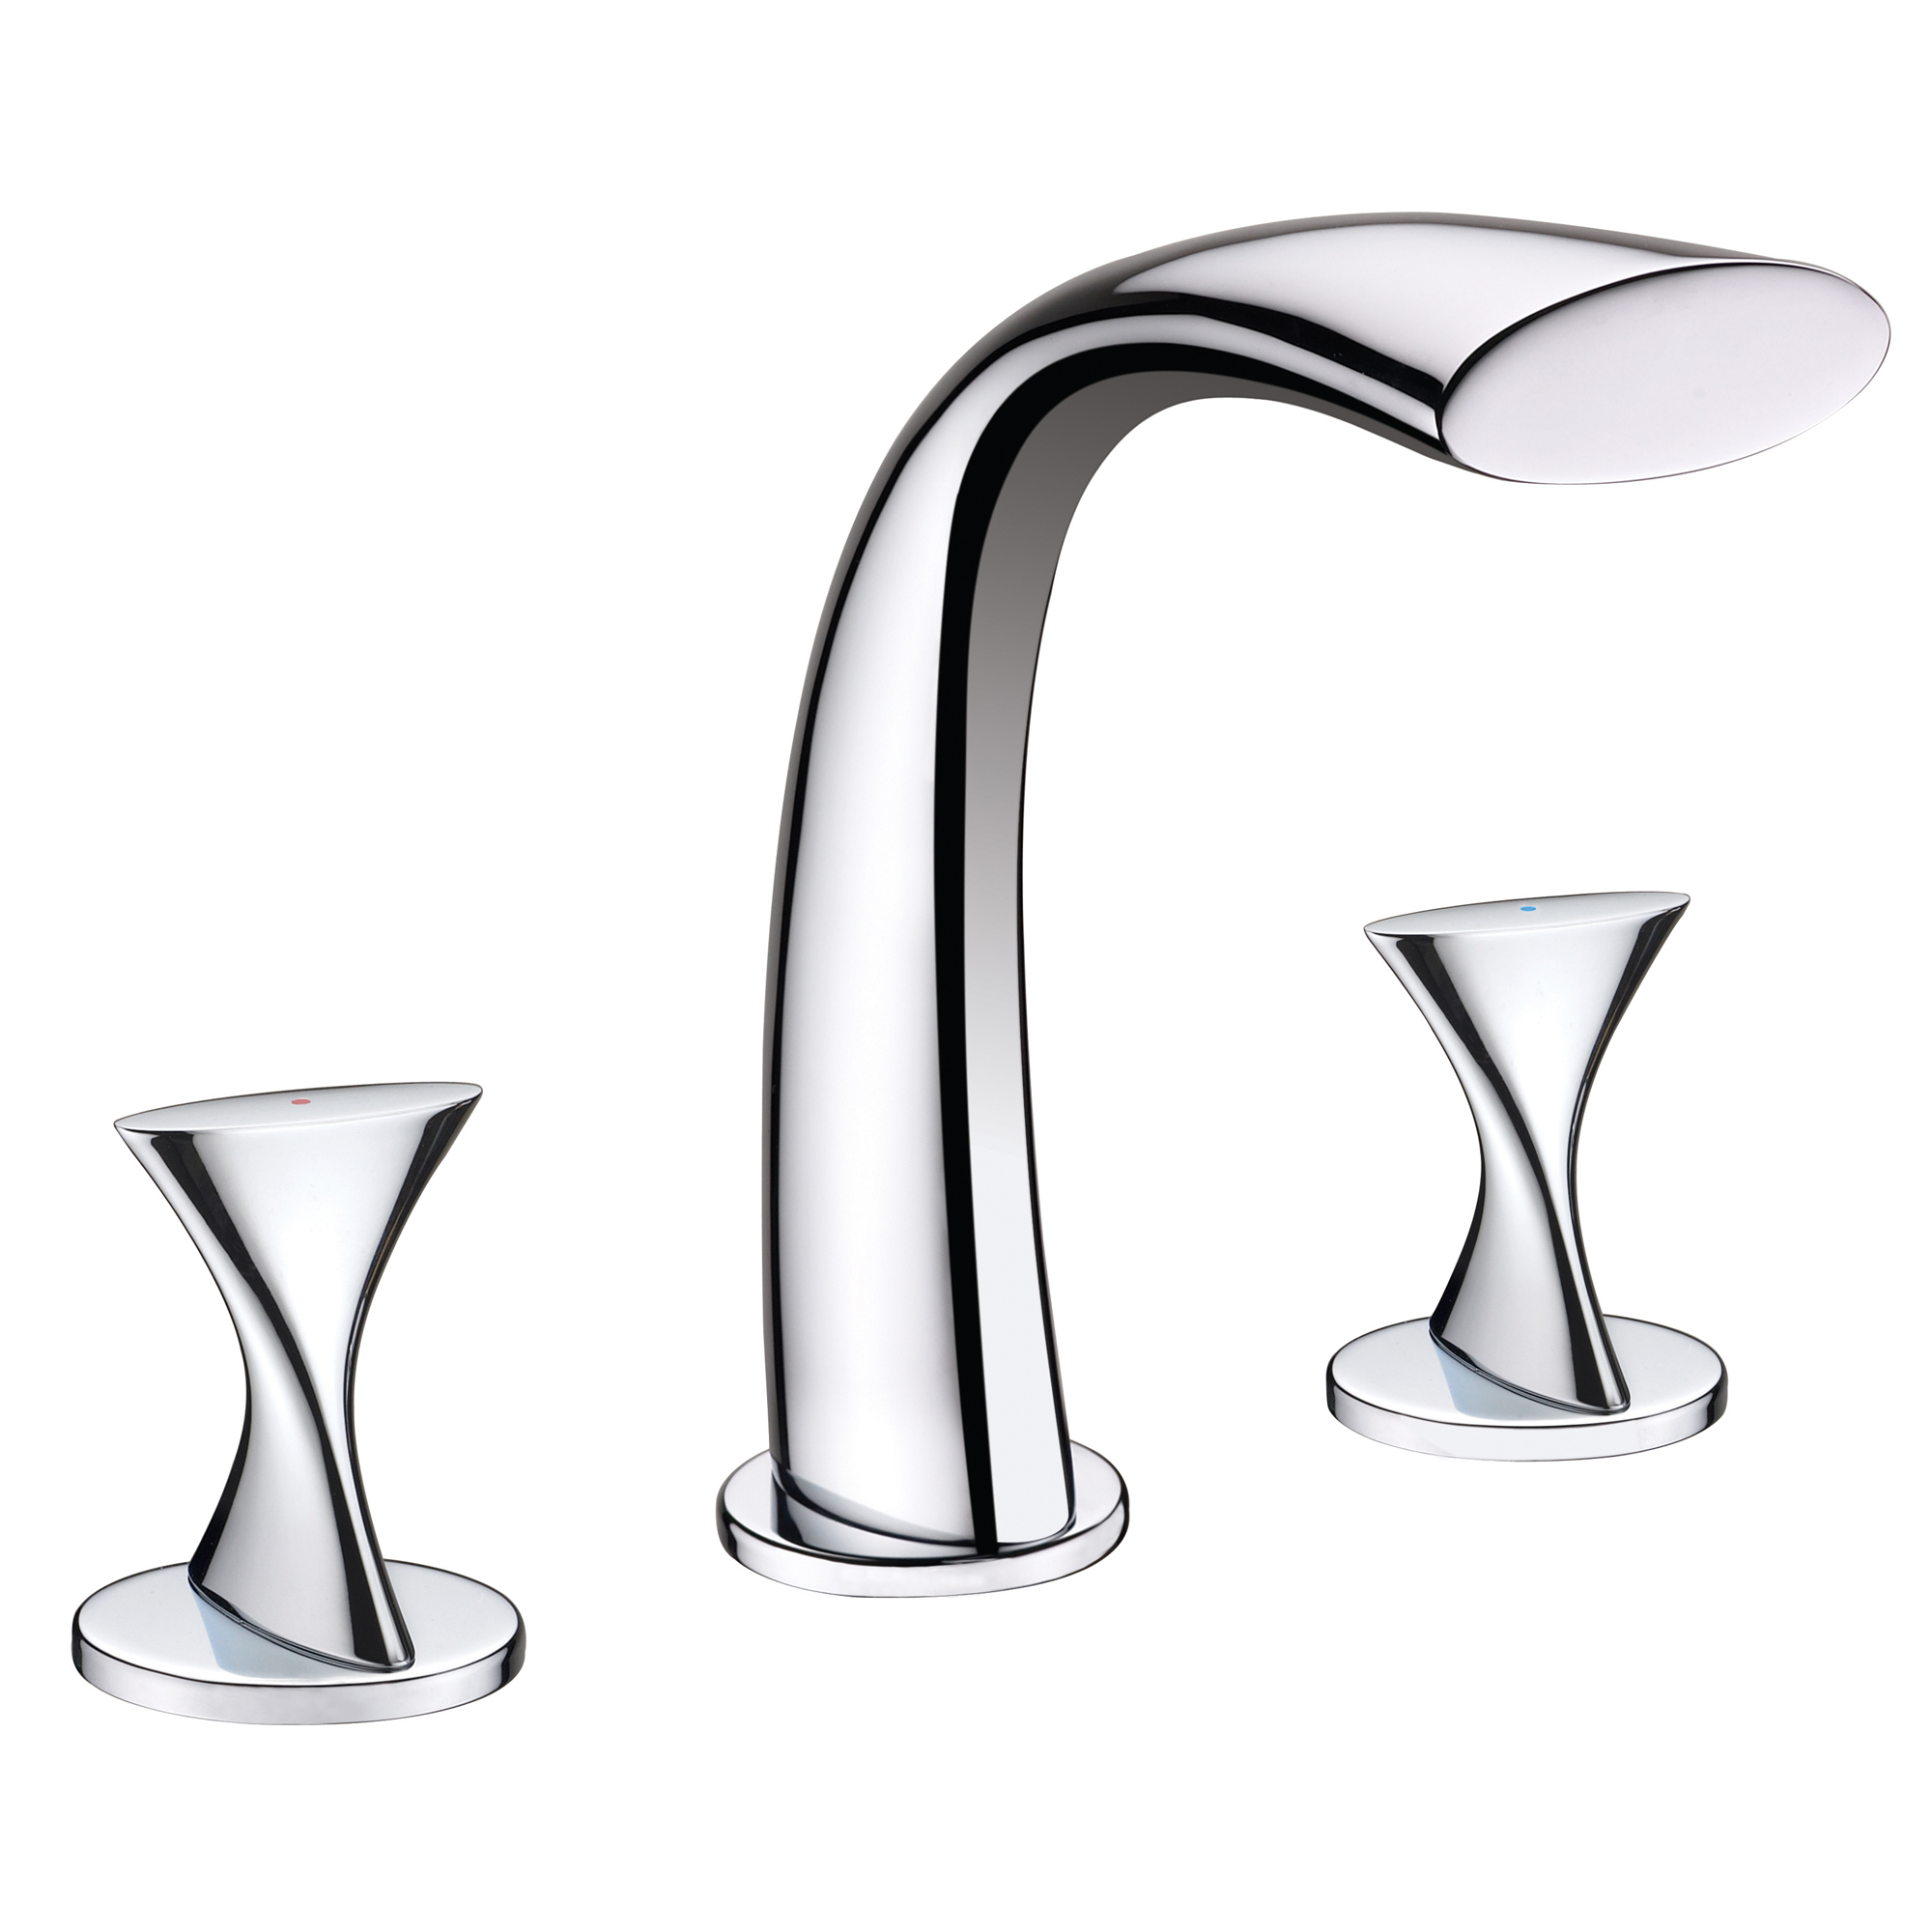 Oceane Chrome Finish Double Handled Bathtub Faucet